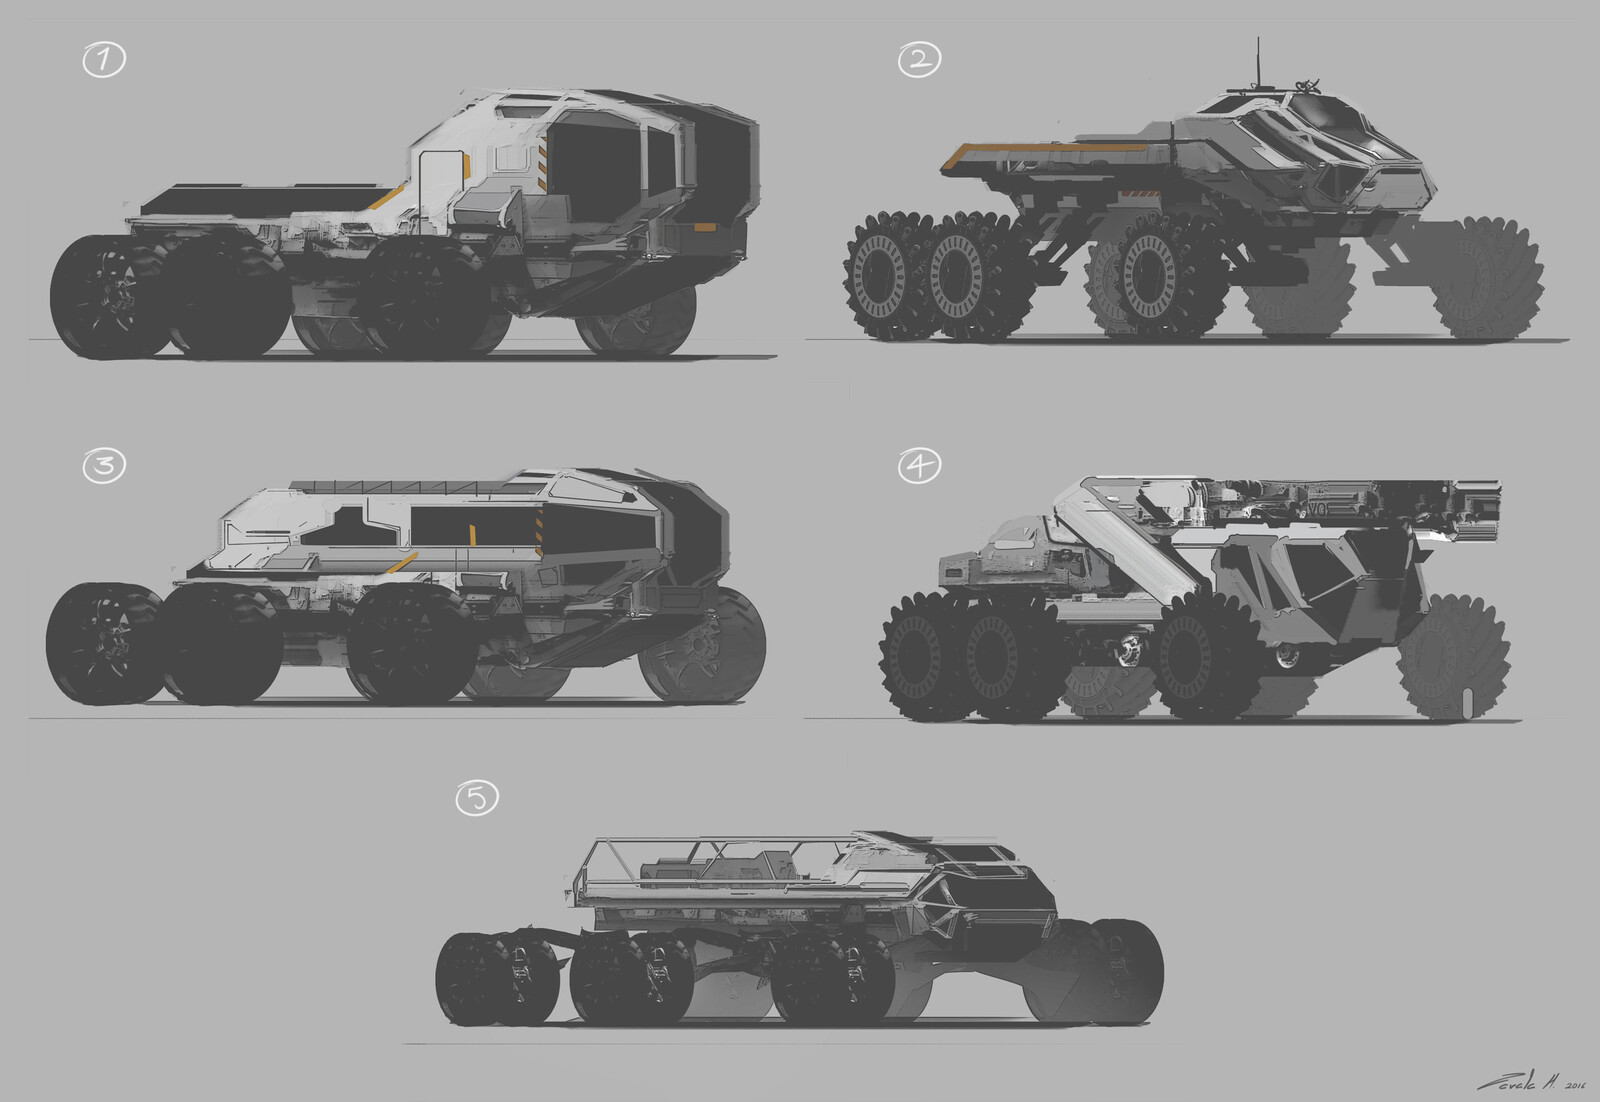 A clear example of what the director didn't want. The rover was the first assignment the whole team did so doing these sketches instantly put everyone in the right direction of what not to do.